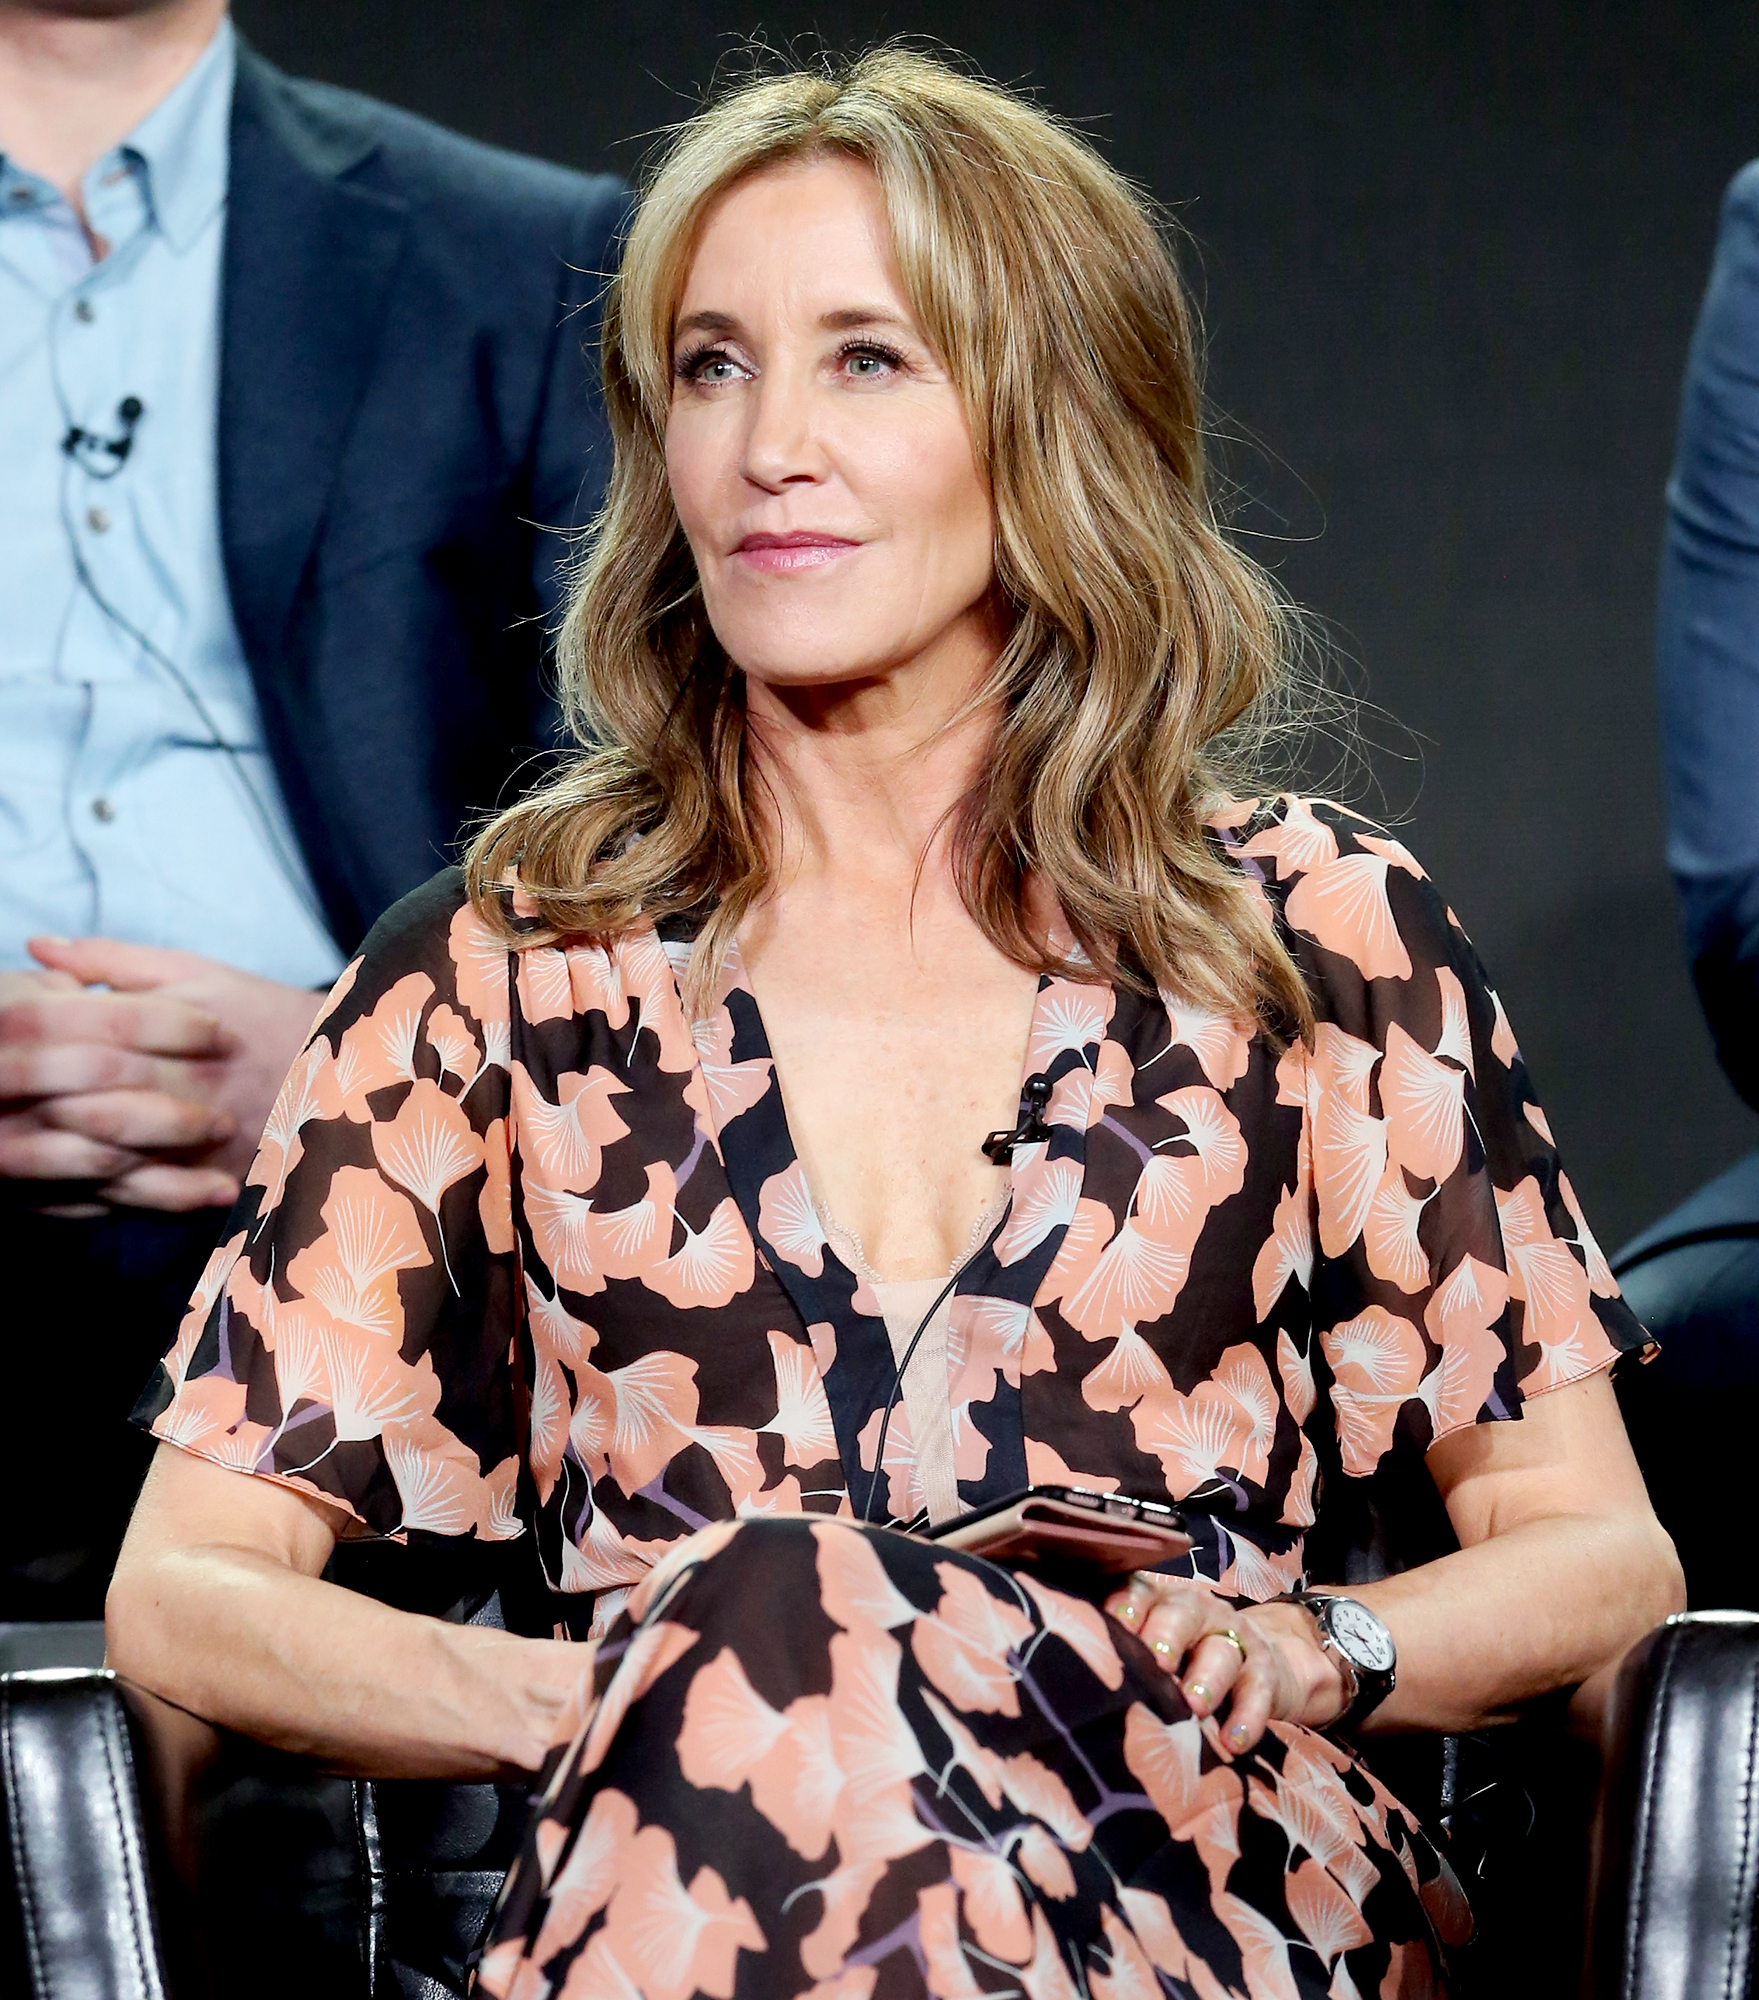 Celebrity News: Felicity-Huffman-Appears-in-Court-After-College-Scam-Arrests